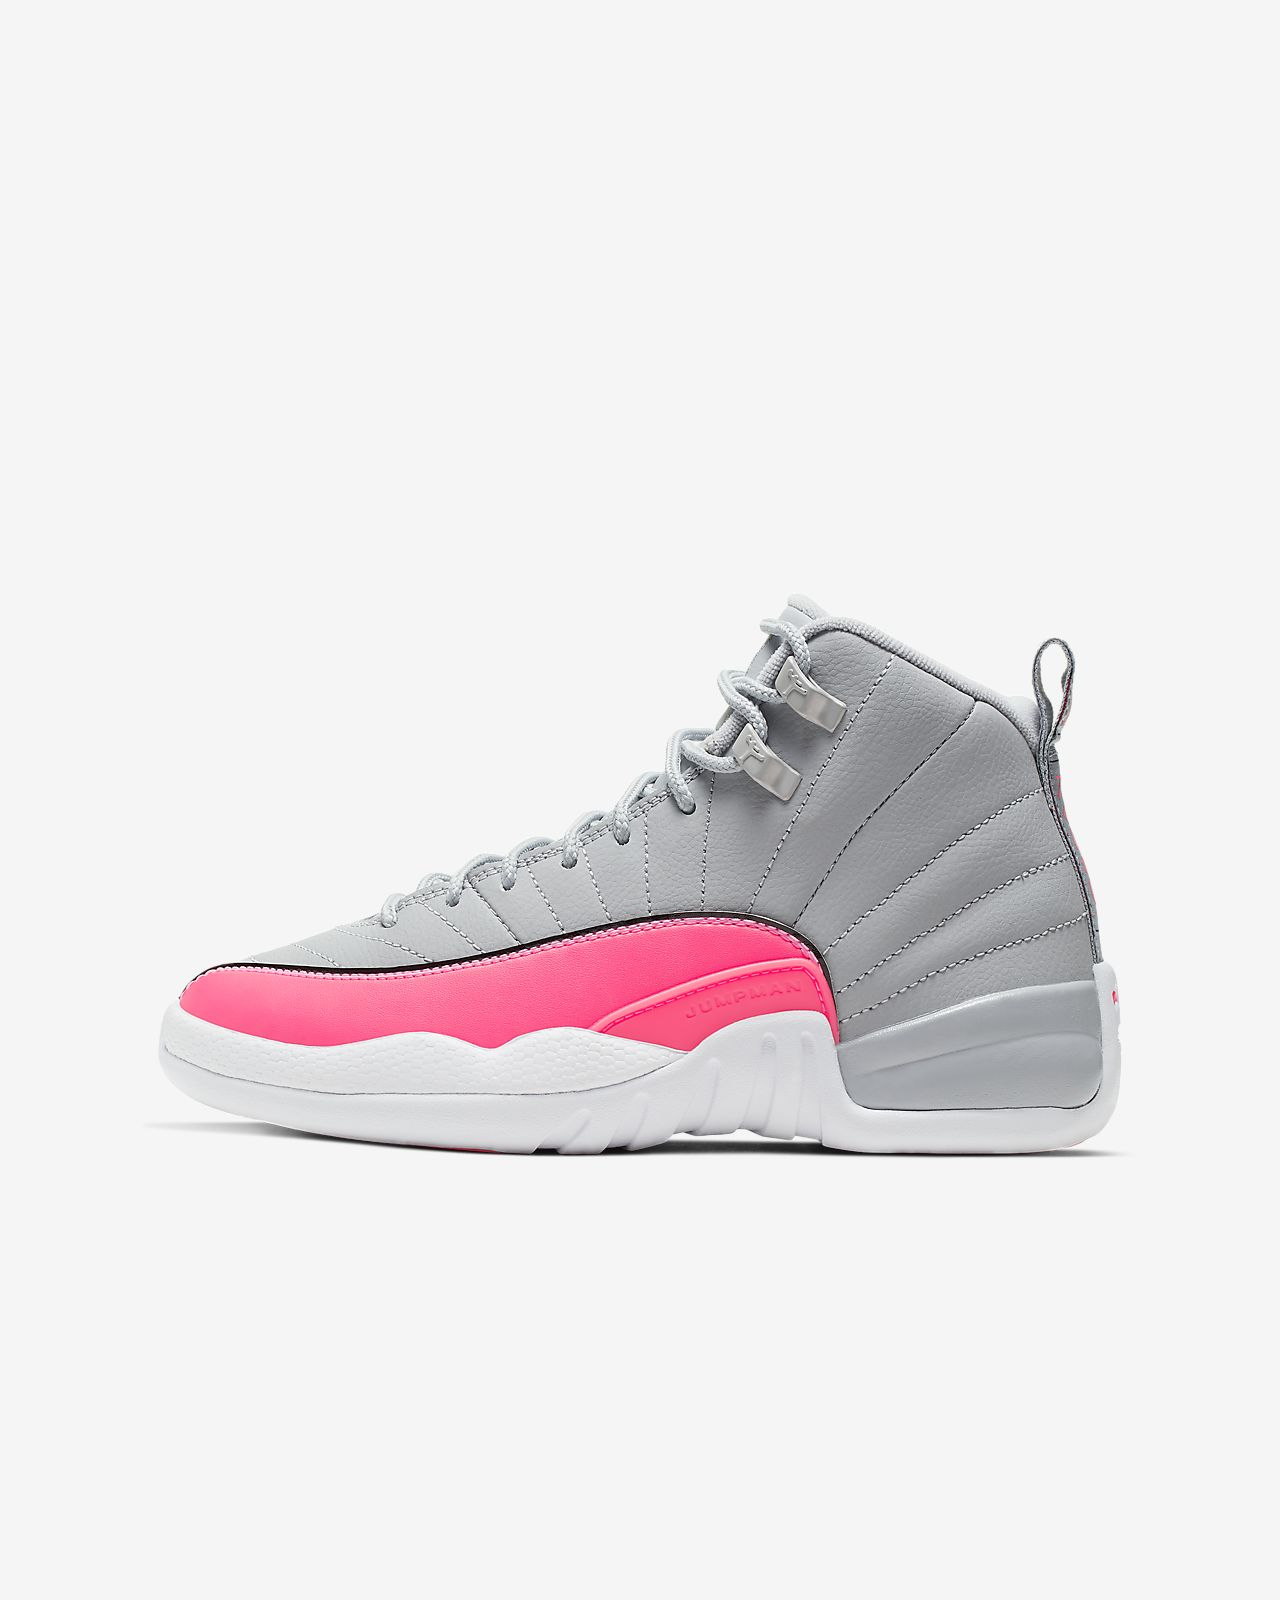 Air 12 Kids' Jordan Big Shoe Retro mw8nN0